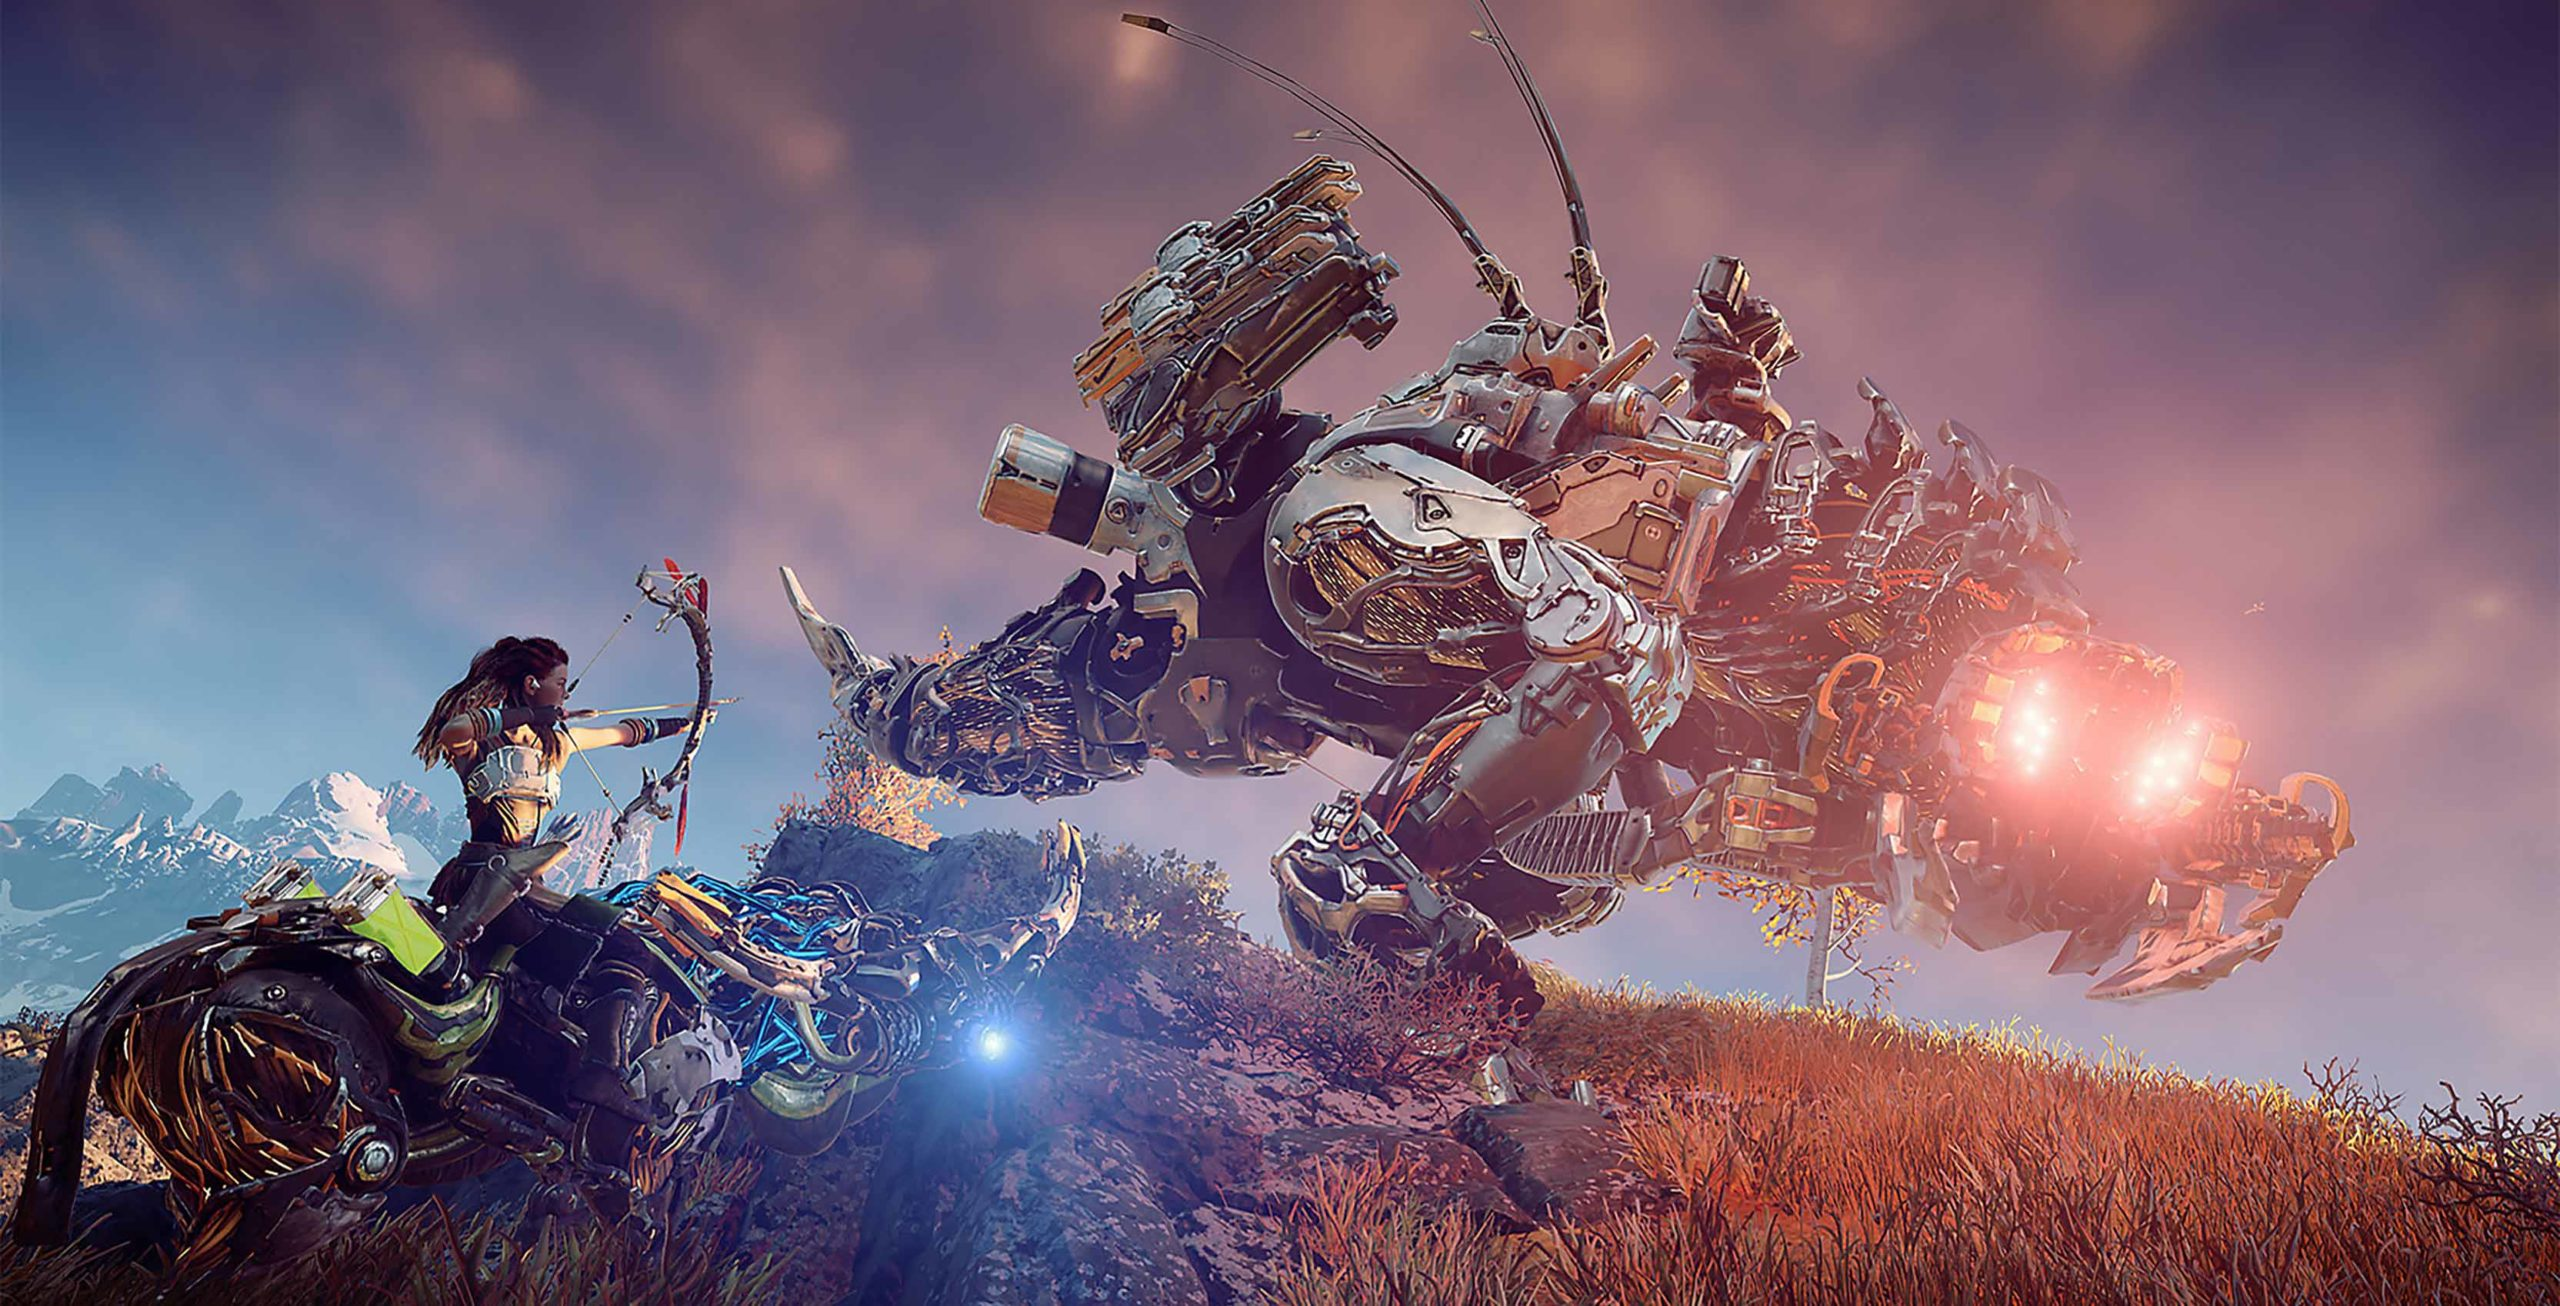 PlayStation to start bringing games to PC, beginning with Horizon Zero Dawn: report